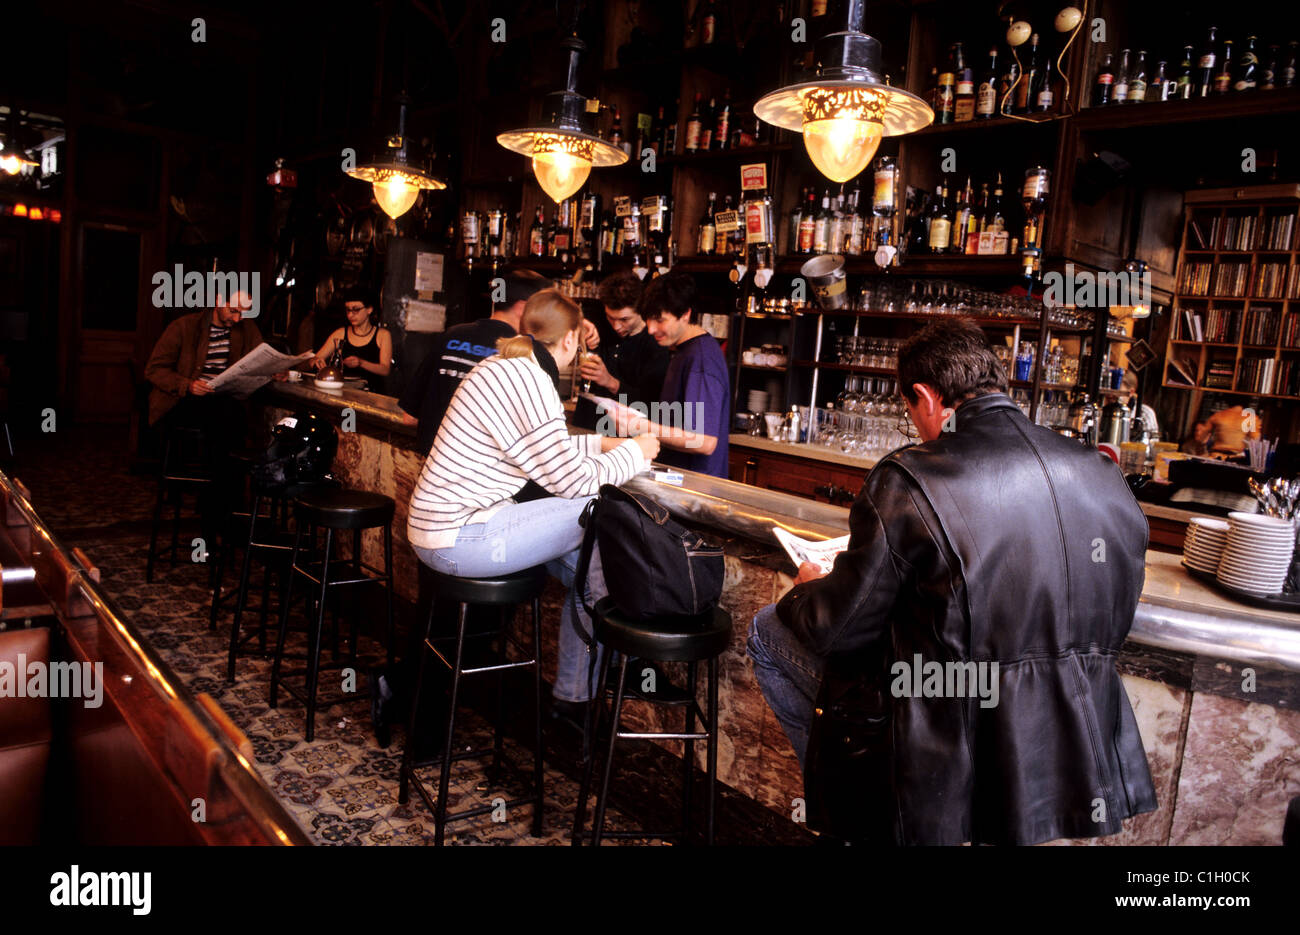 France, PARIS, interieur du Cafe Charbon, rue Oberkampf - Stock Image